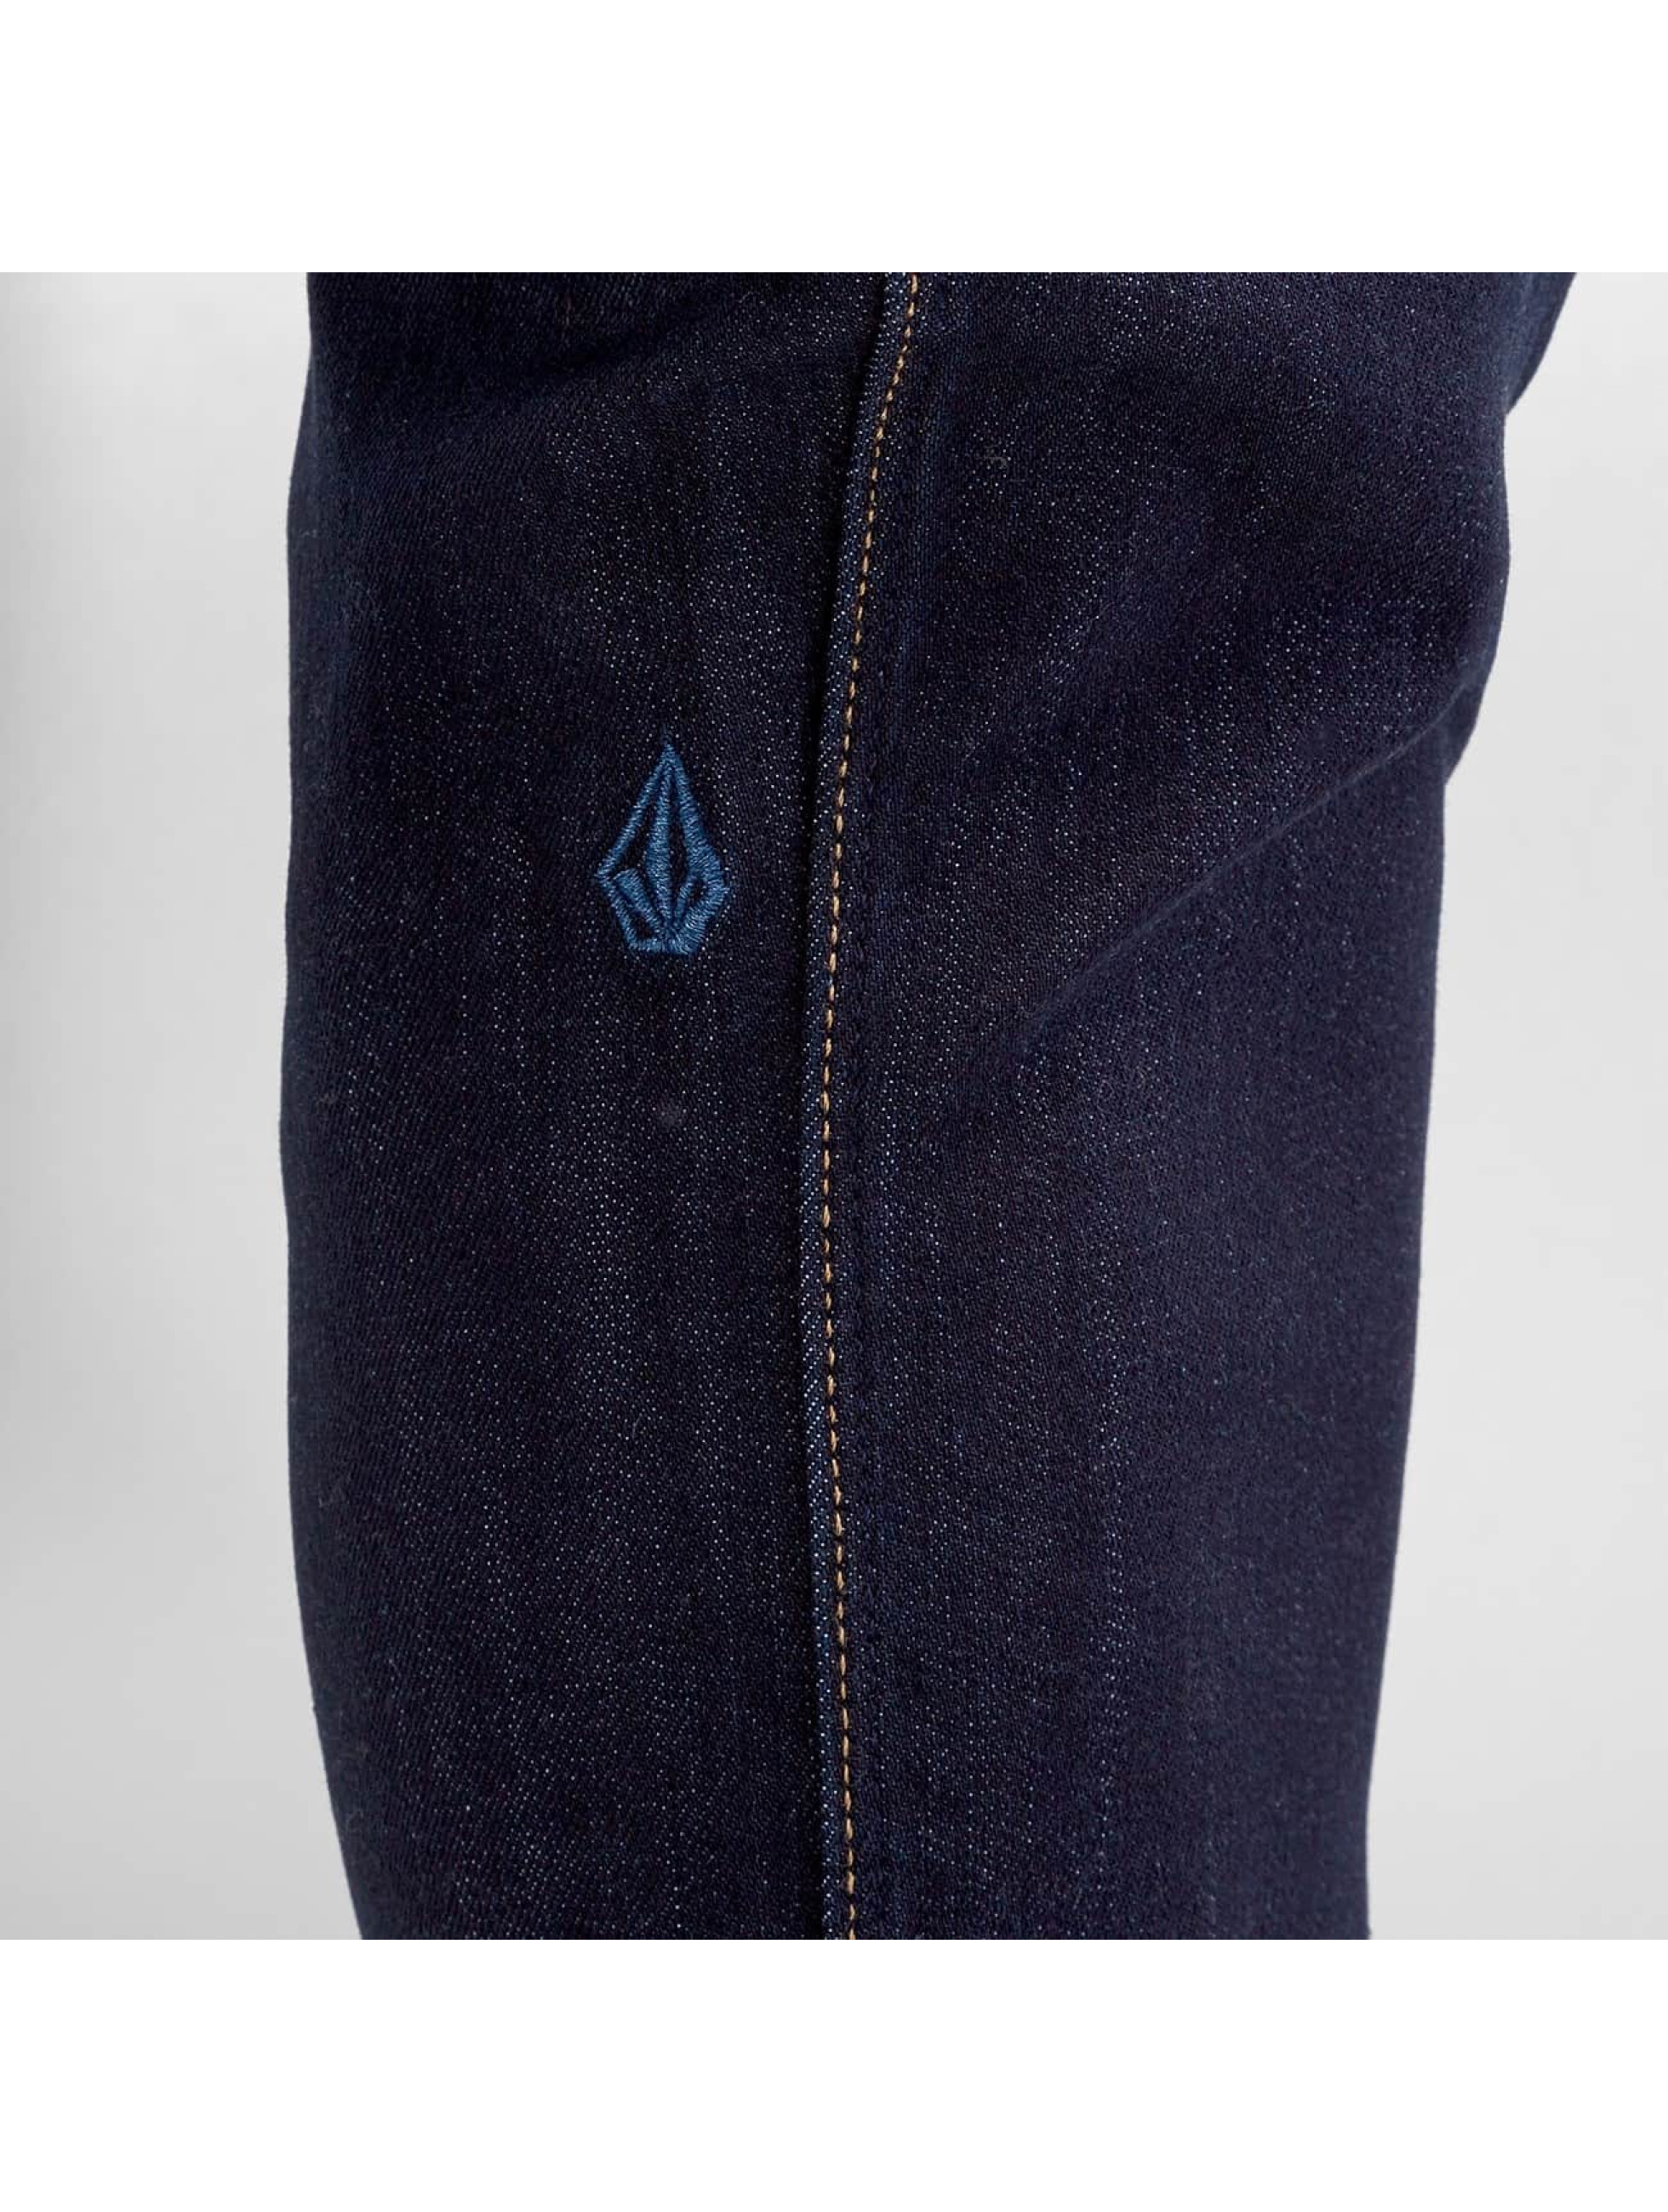 Volcom Straight Fit farkut 2x4 Denim sininen